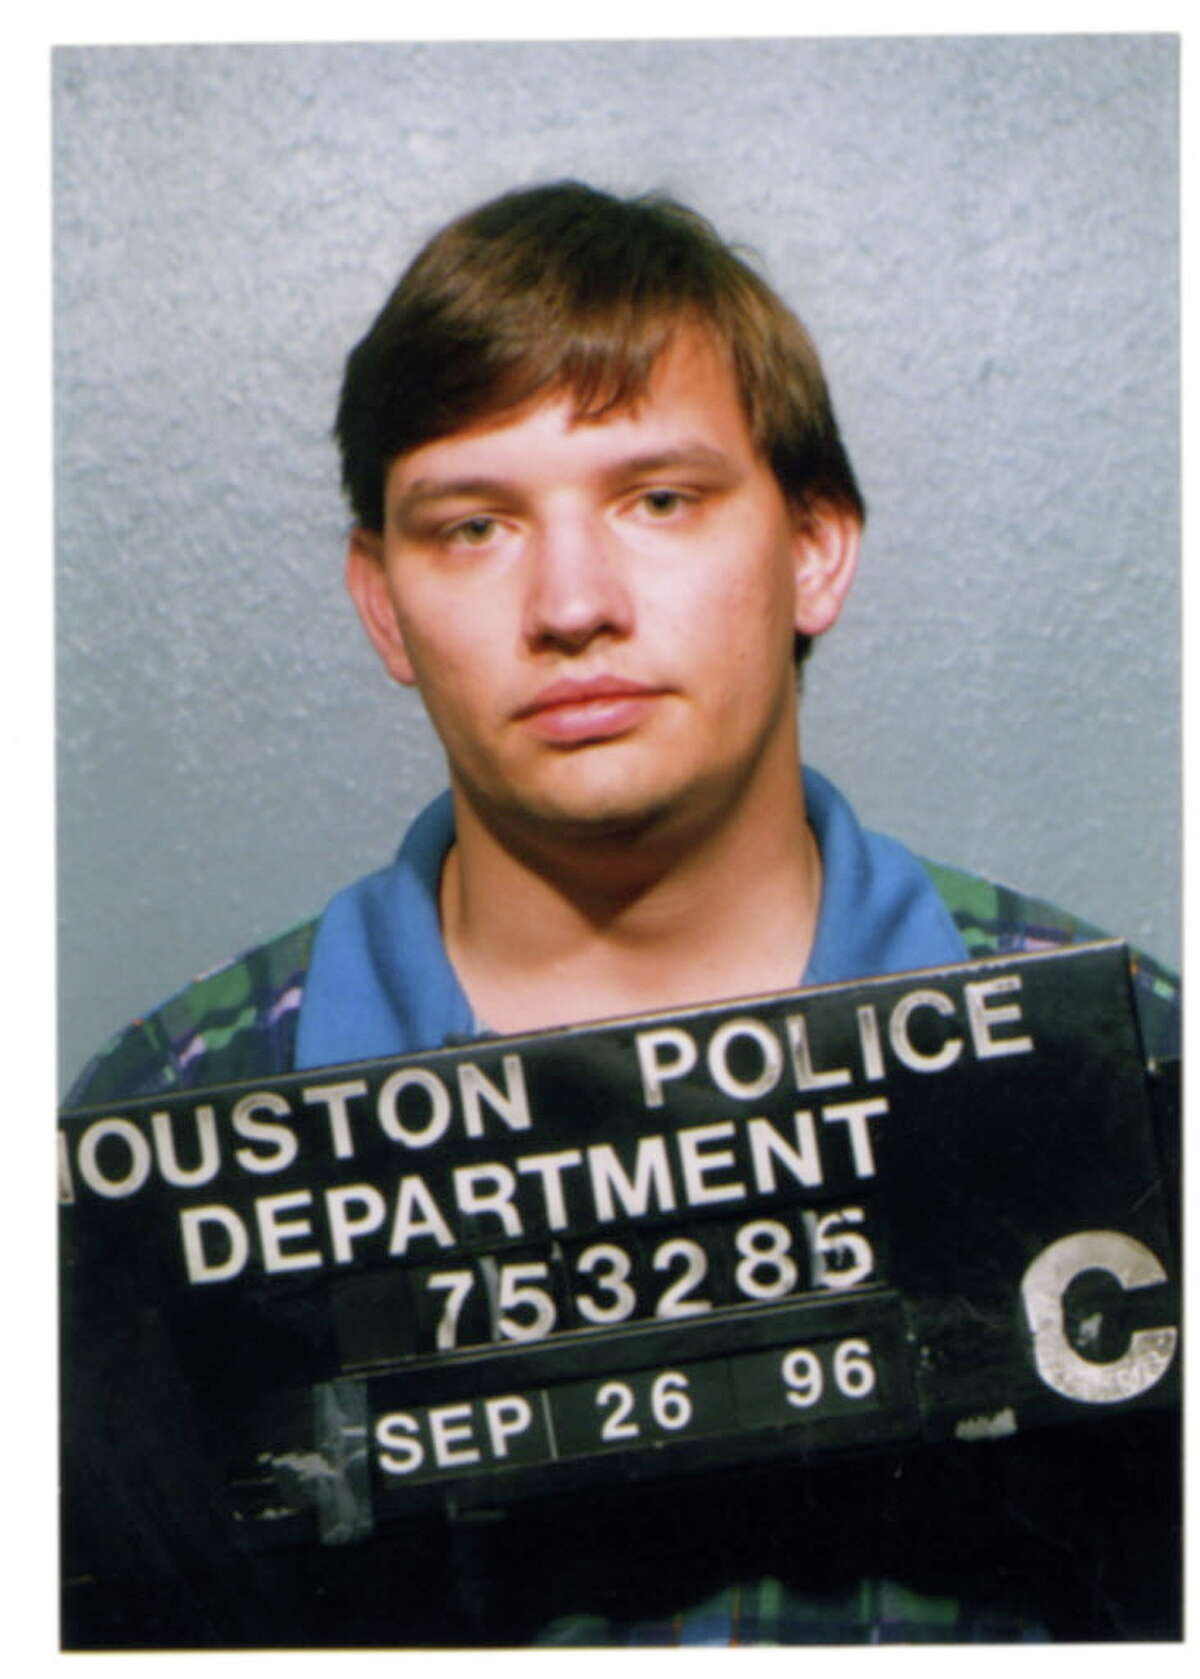 This 1996 photo shows Jason Posey when he was booked by HPD after attempting to elude officers who tried to stop him after Posey ran a red light. Posey, who was working as an aide for Stockman at the time, received deferred prosecution.